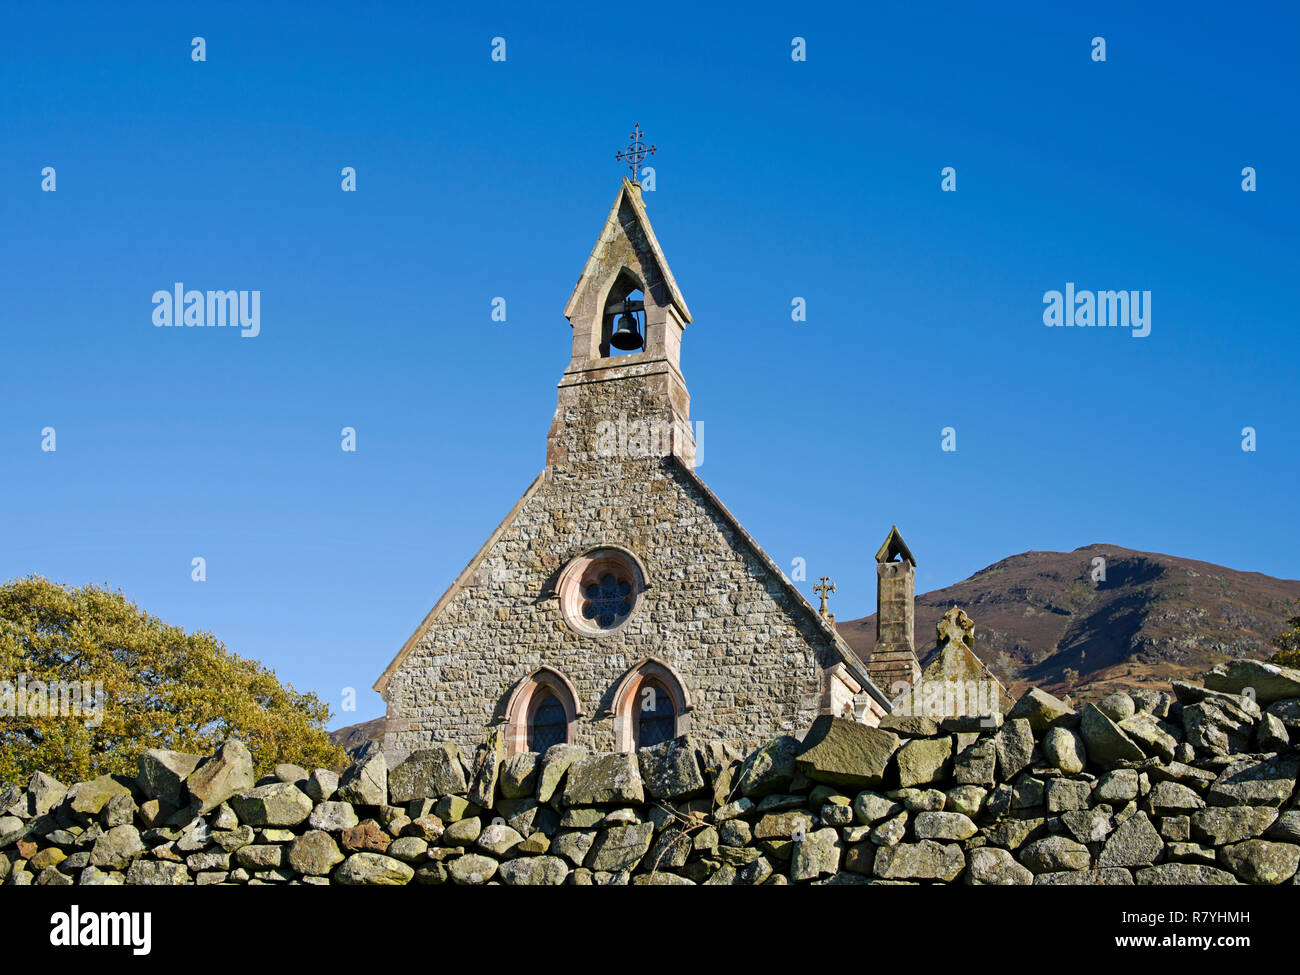 Bell tower and stone-built gable wall of St Bega's Church, Bassenthwaite, seen against deep blue sky, dry stone wall in foreground, Lake District UK. - Stock Image